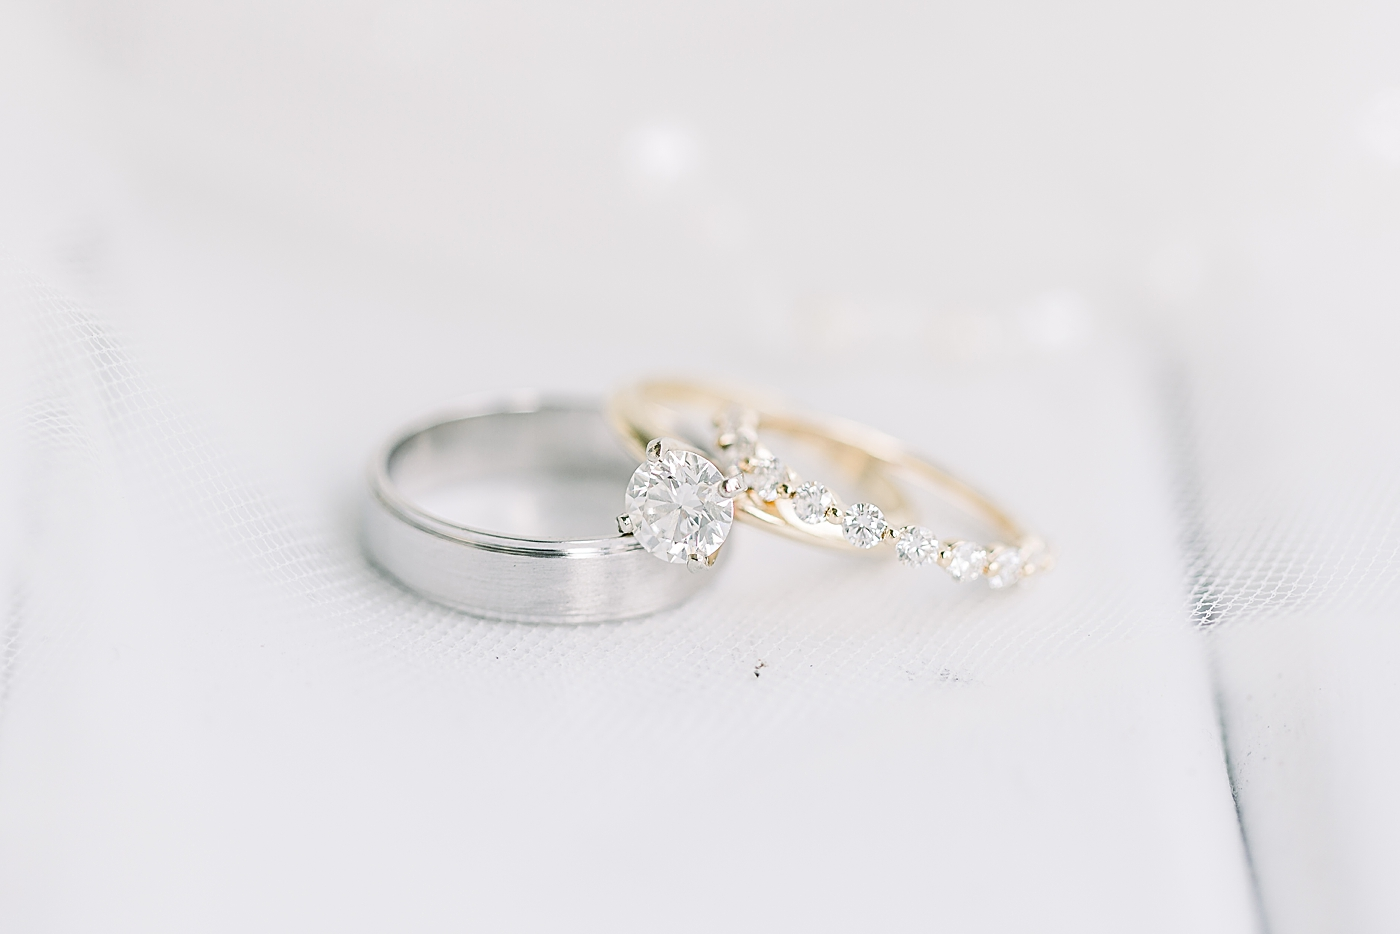 Ring photograph